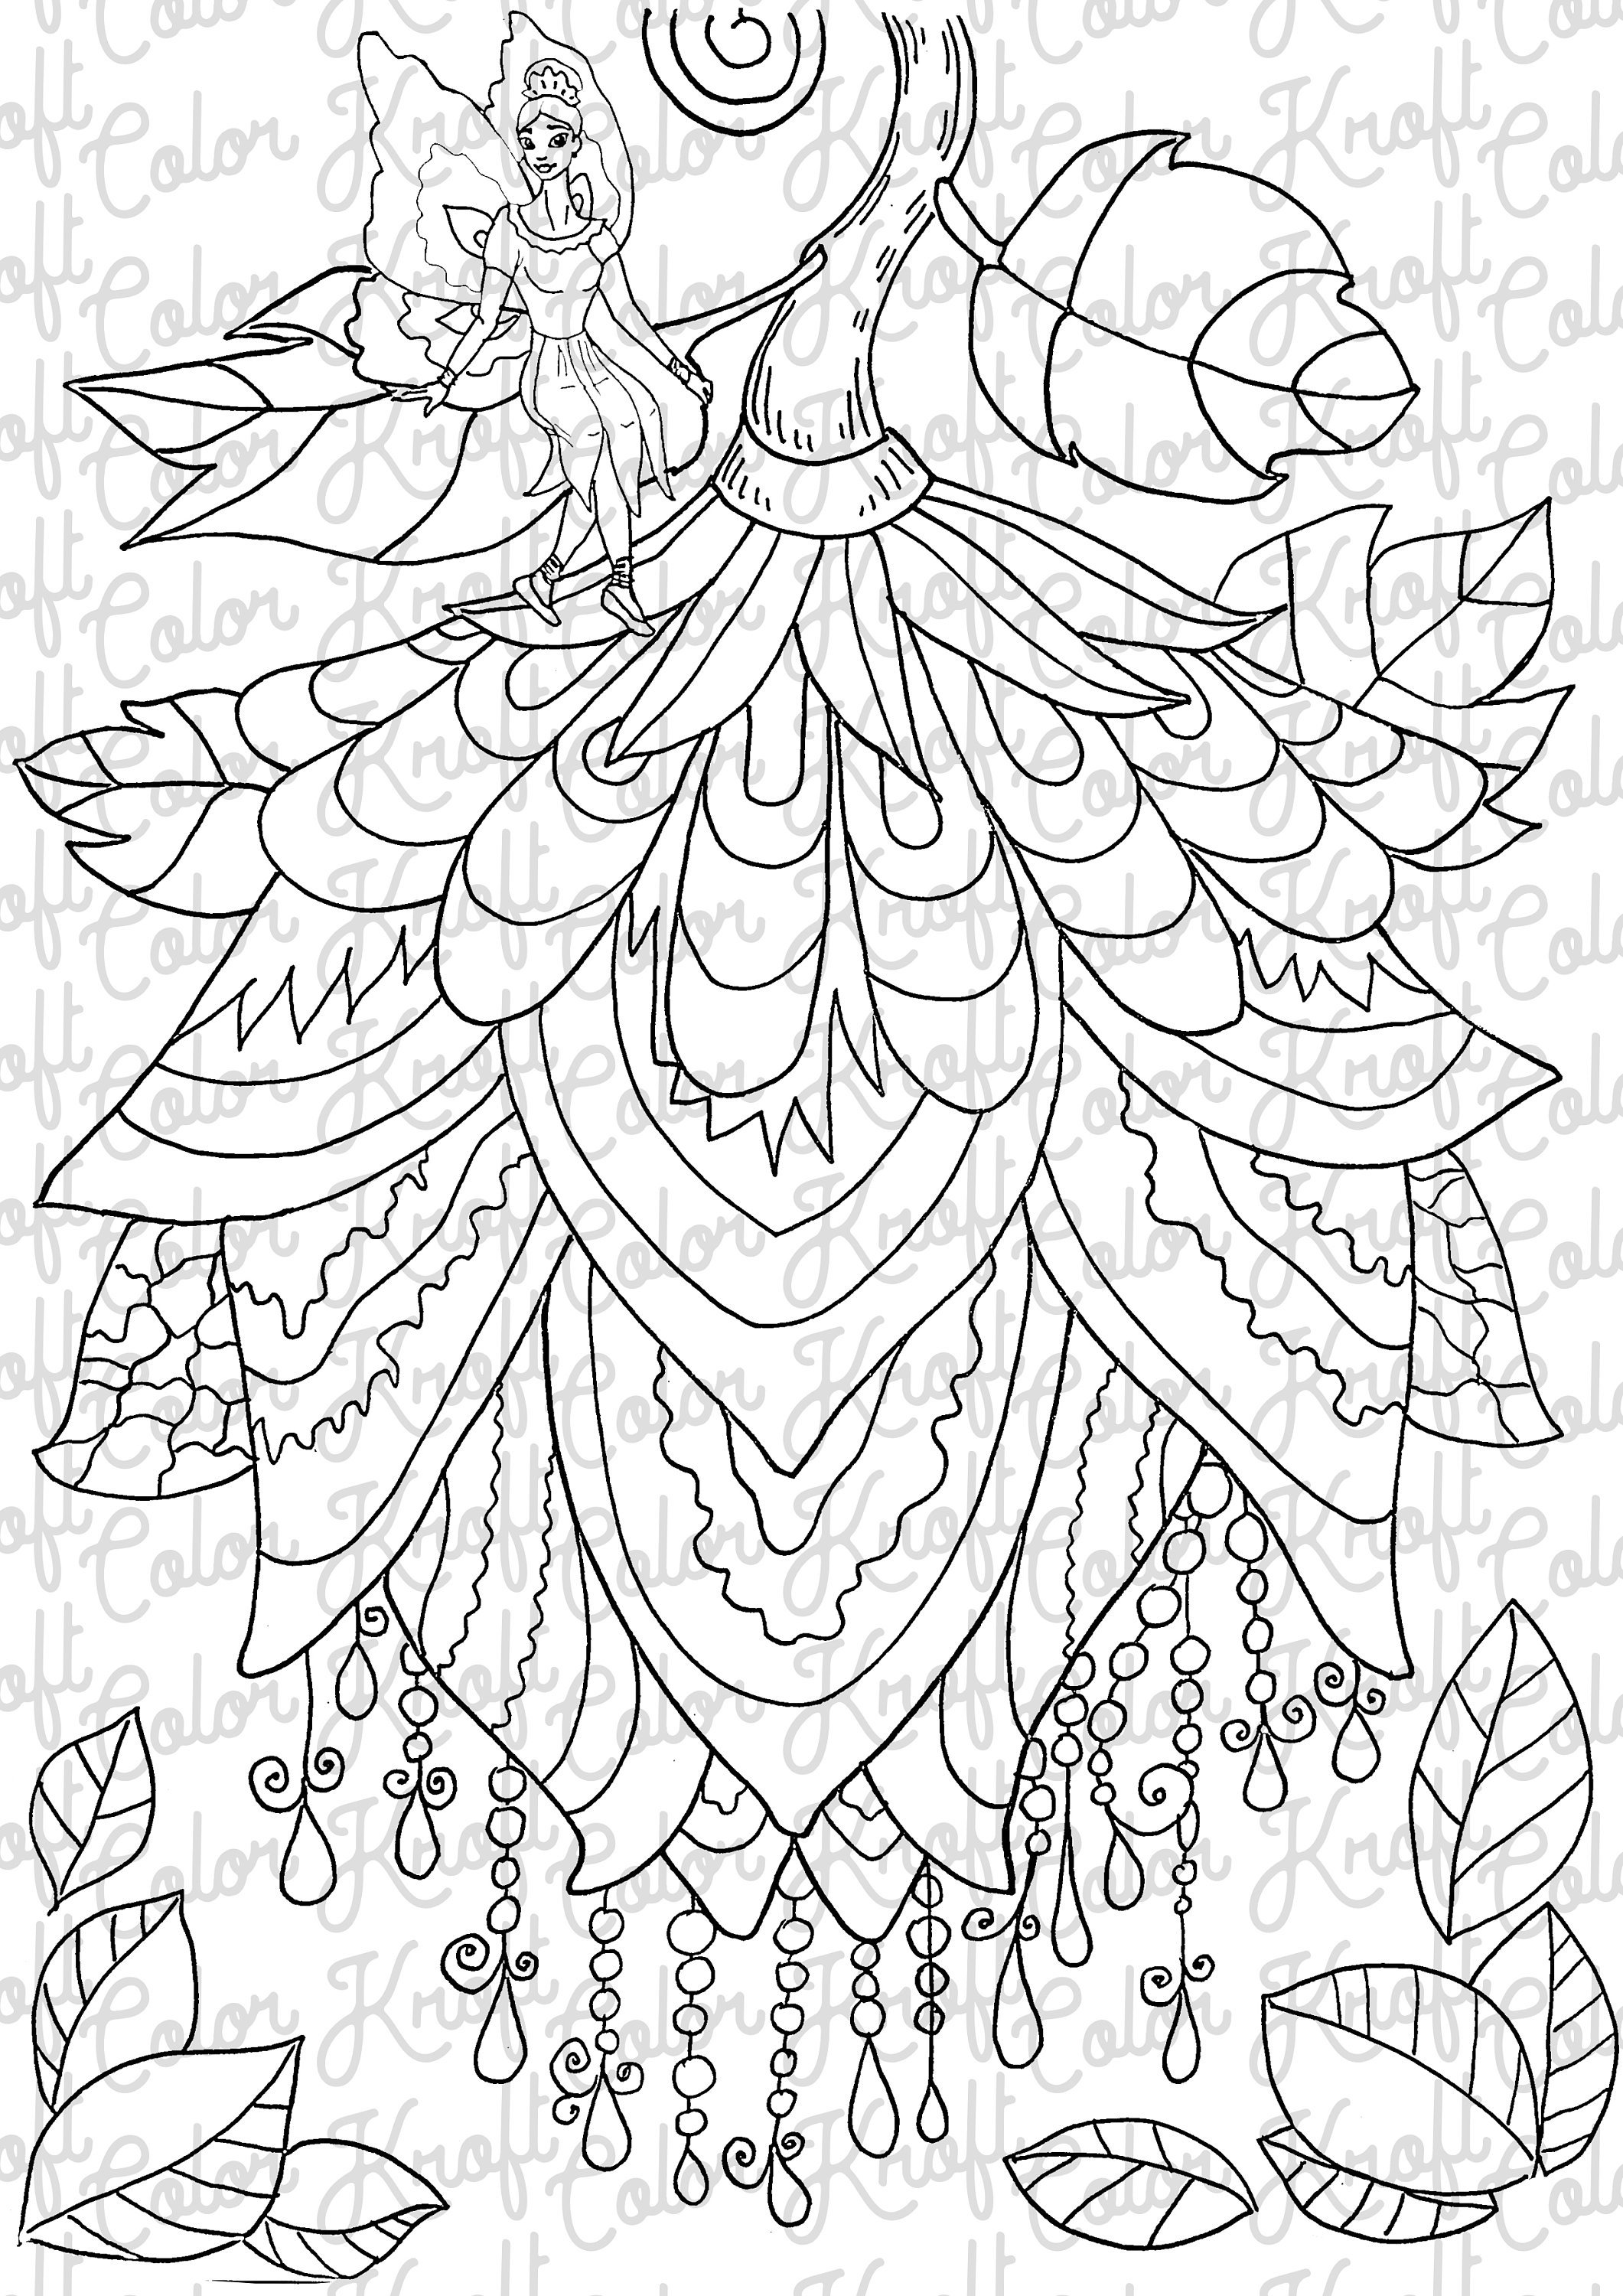 fairy garden coloring page printable coloring page etsy. Black Bedroom Furniture Sets. Home Design Ideas